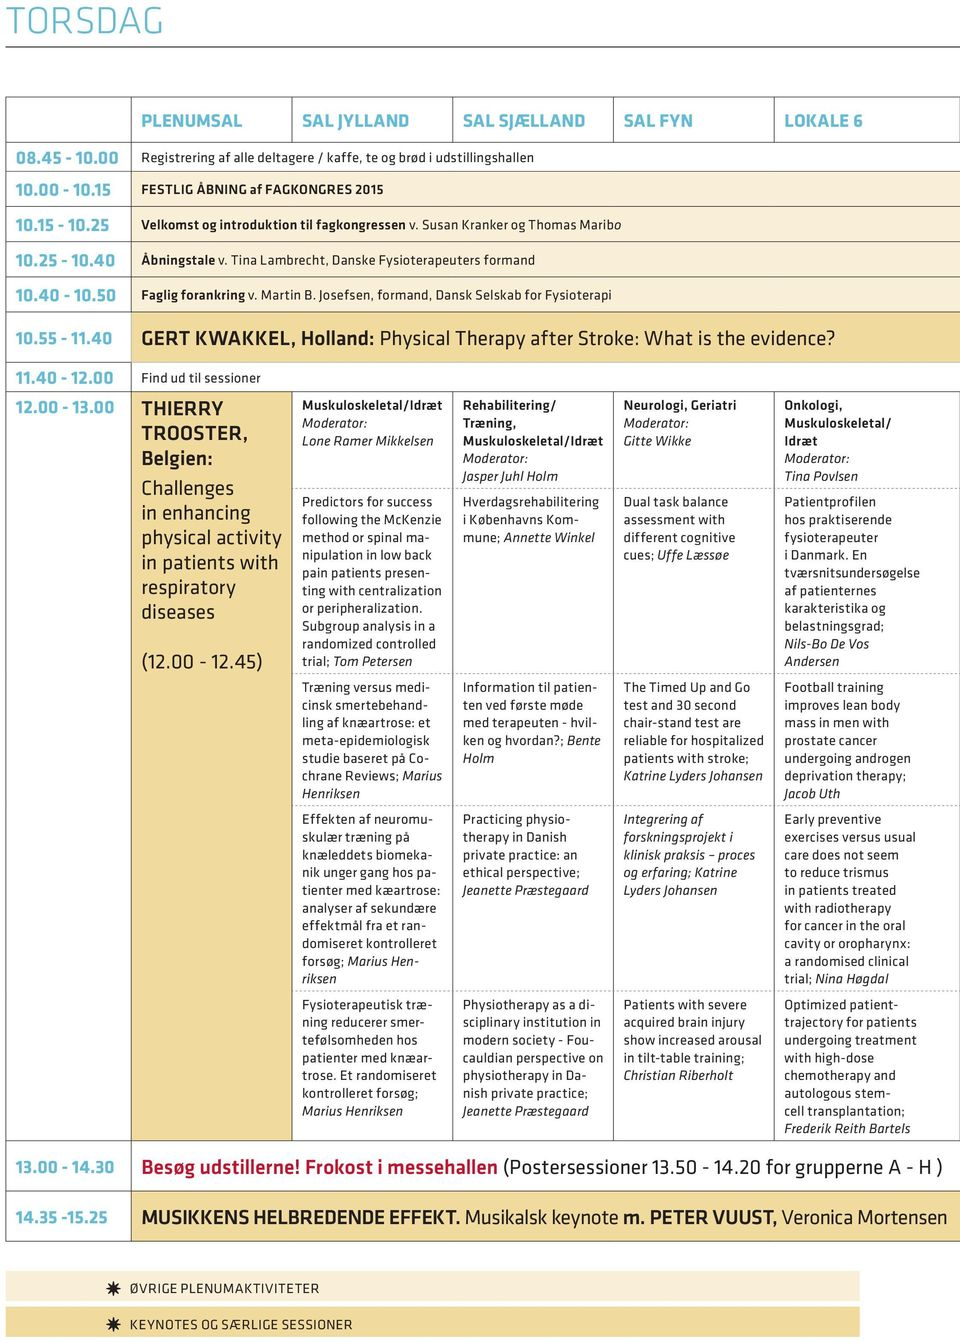 Josefsen, formand, Dansk Selskab for Fysioterapi 10.55-11.40 GERT KWAKKEL, Holland: Physical Therapy after Stroke: What is the evidence? 11.40-12.00 Find ud til sessioner 12.00-13.